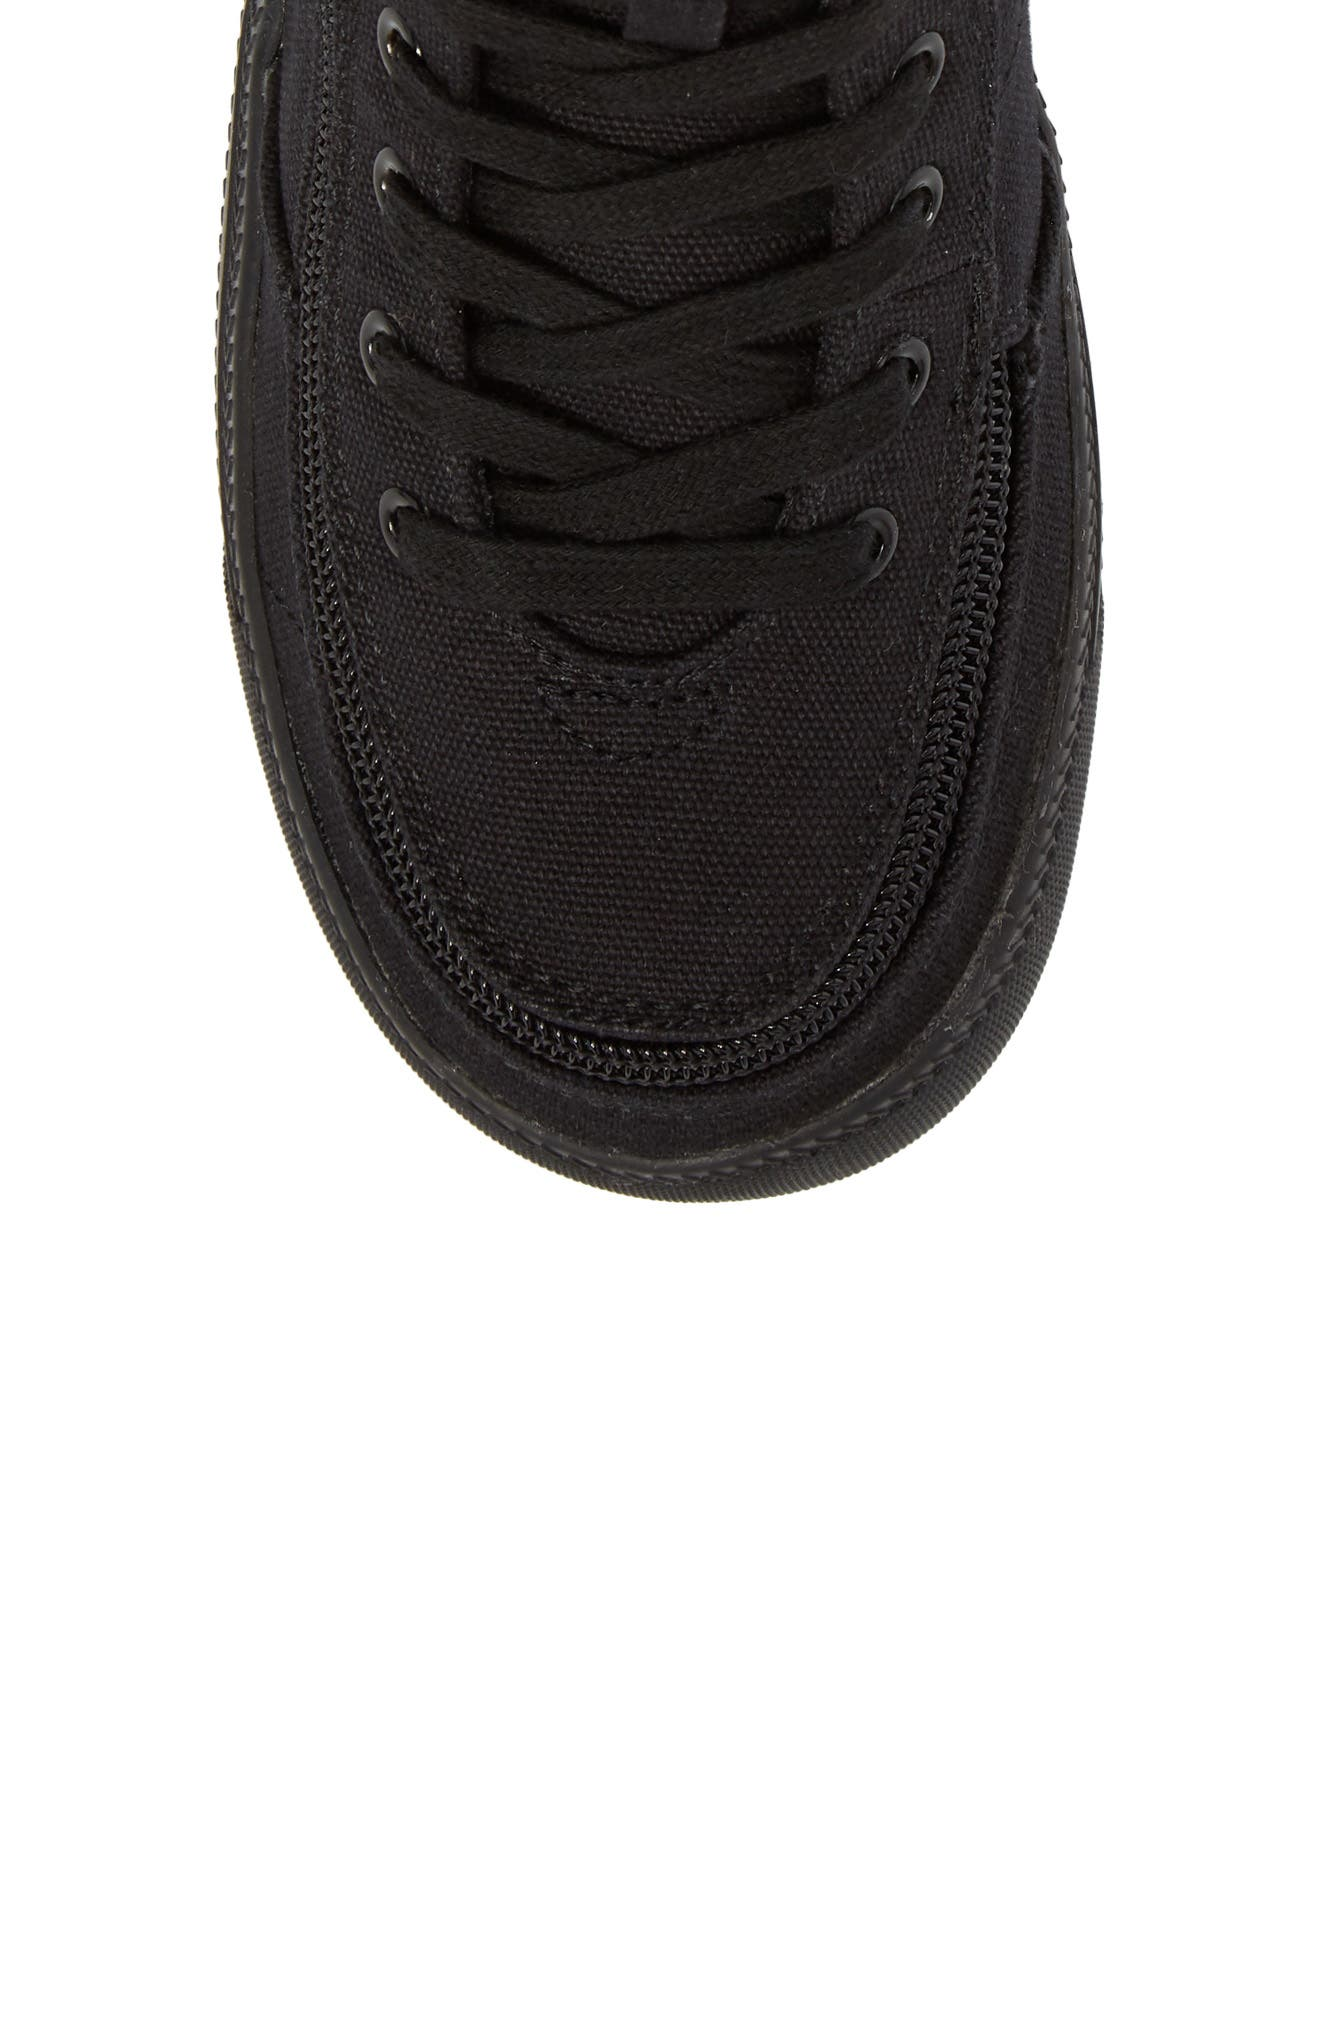 BILLY FOOTWEAR, Classic Hi-Rise Sneaker, Alternate thumbnail 6, color, BLACK TO THE FLOOR